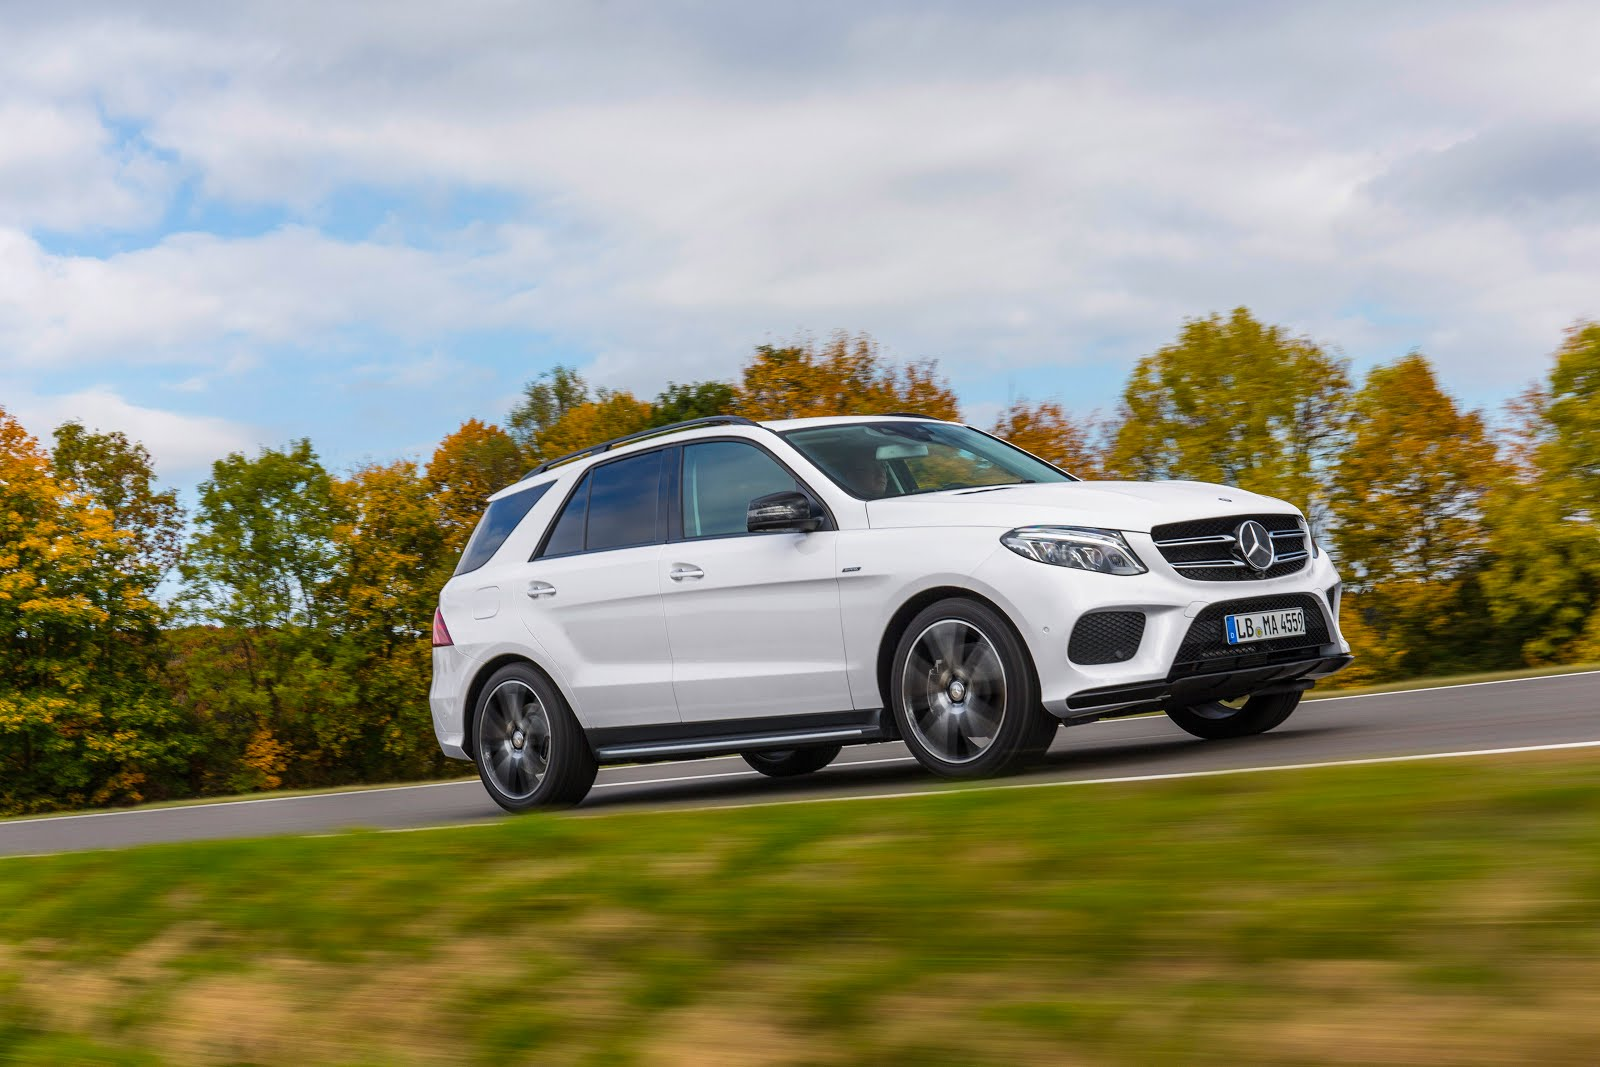 Mercedes AMG Dynamic SUV For New Target Groups